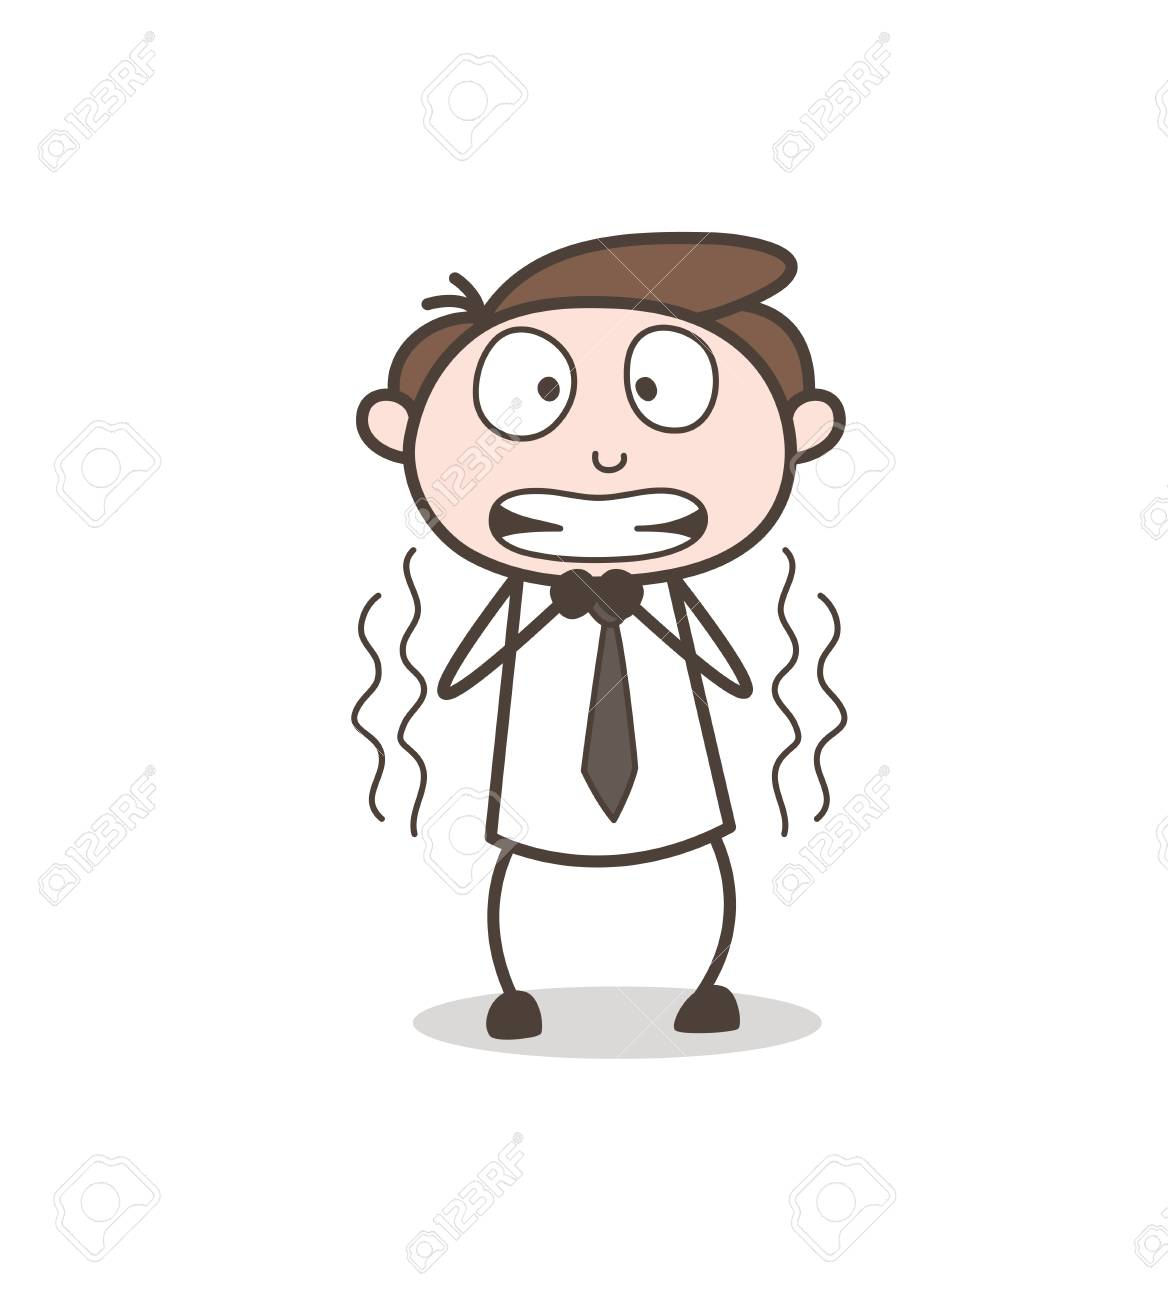 Free Fear Clipart illustration, Download Free Clip Art on Owips.com.